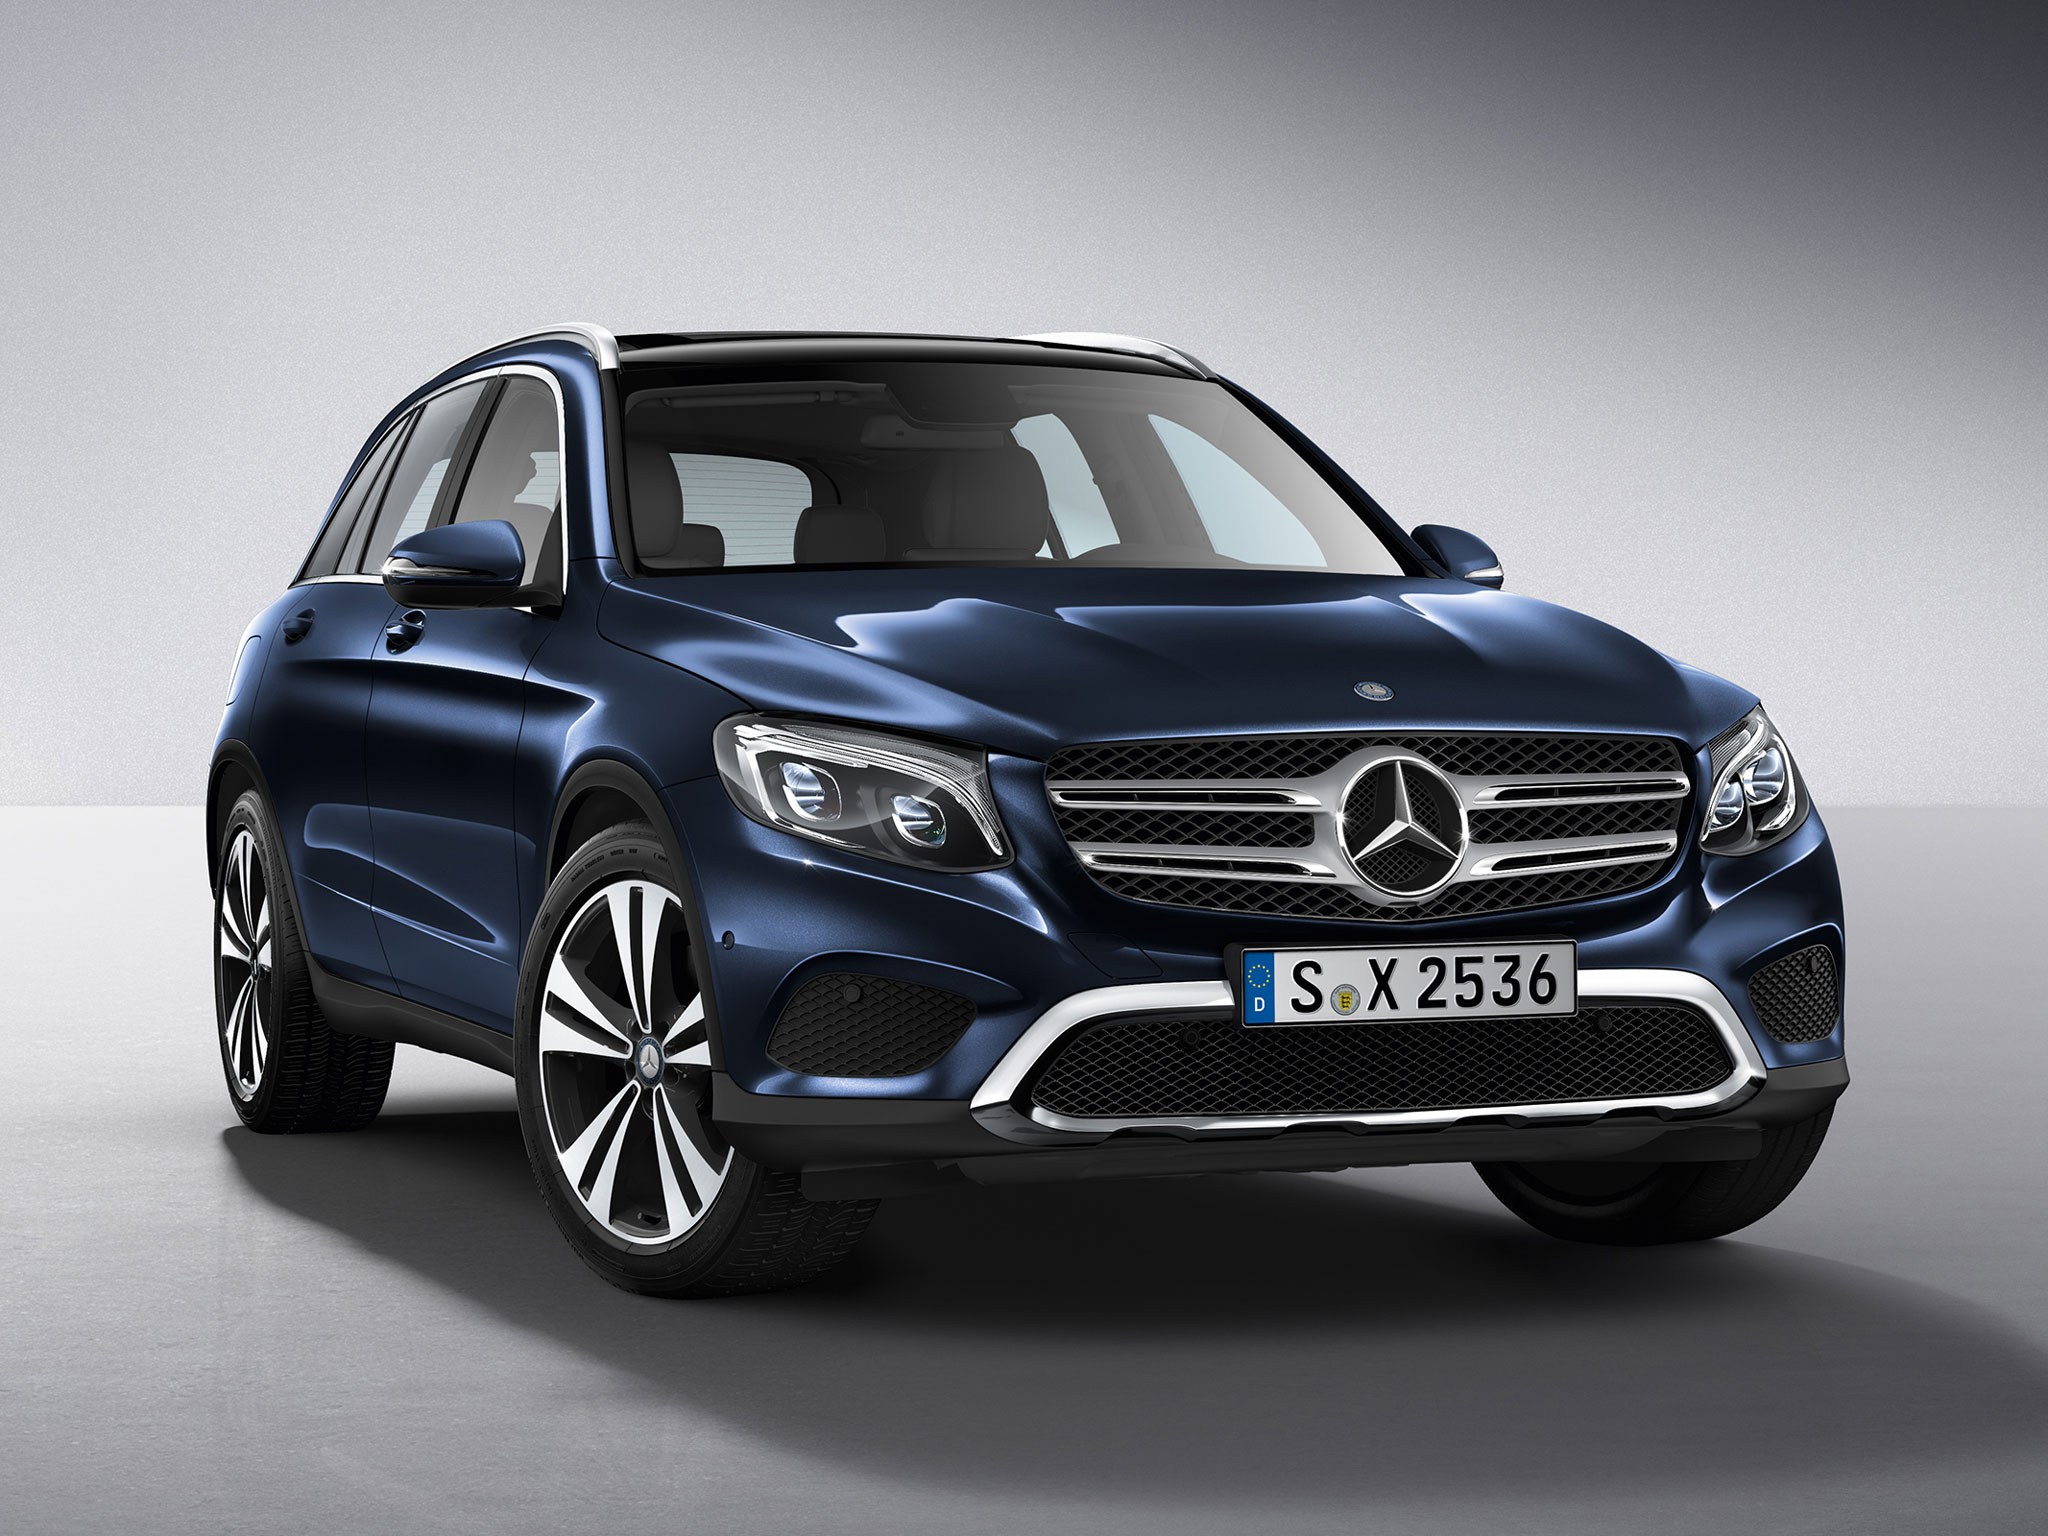 Mbusa 2016 Models 2017 2018 Best Cars Reviews